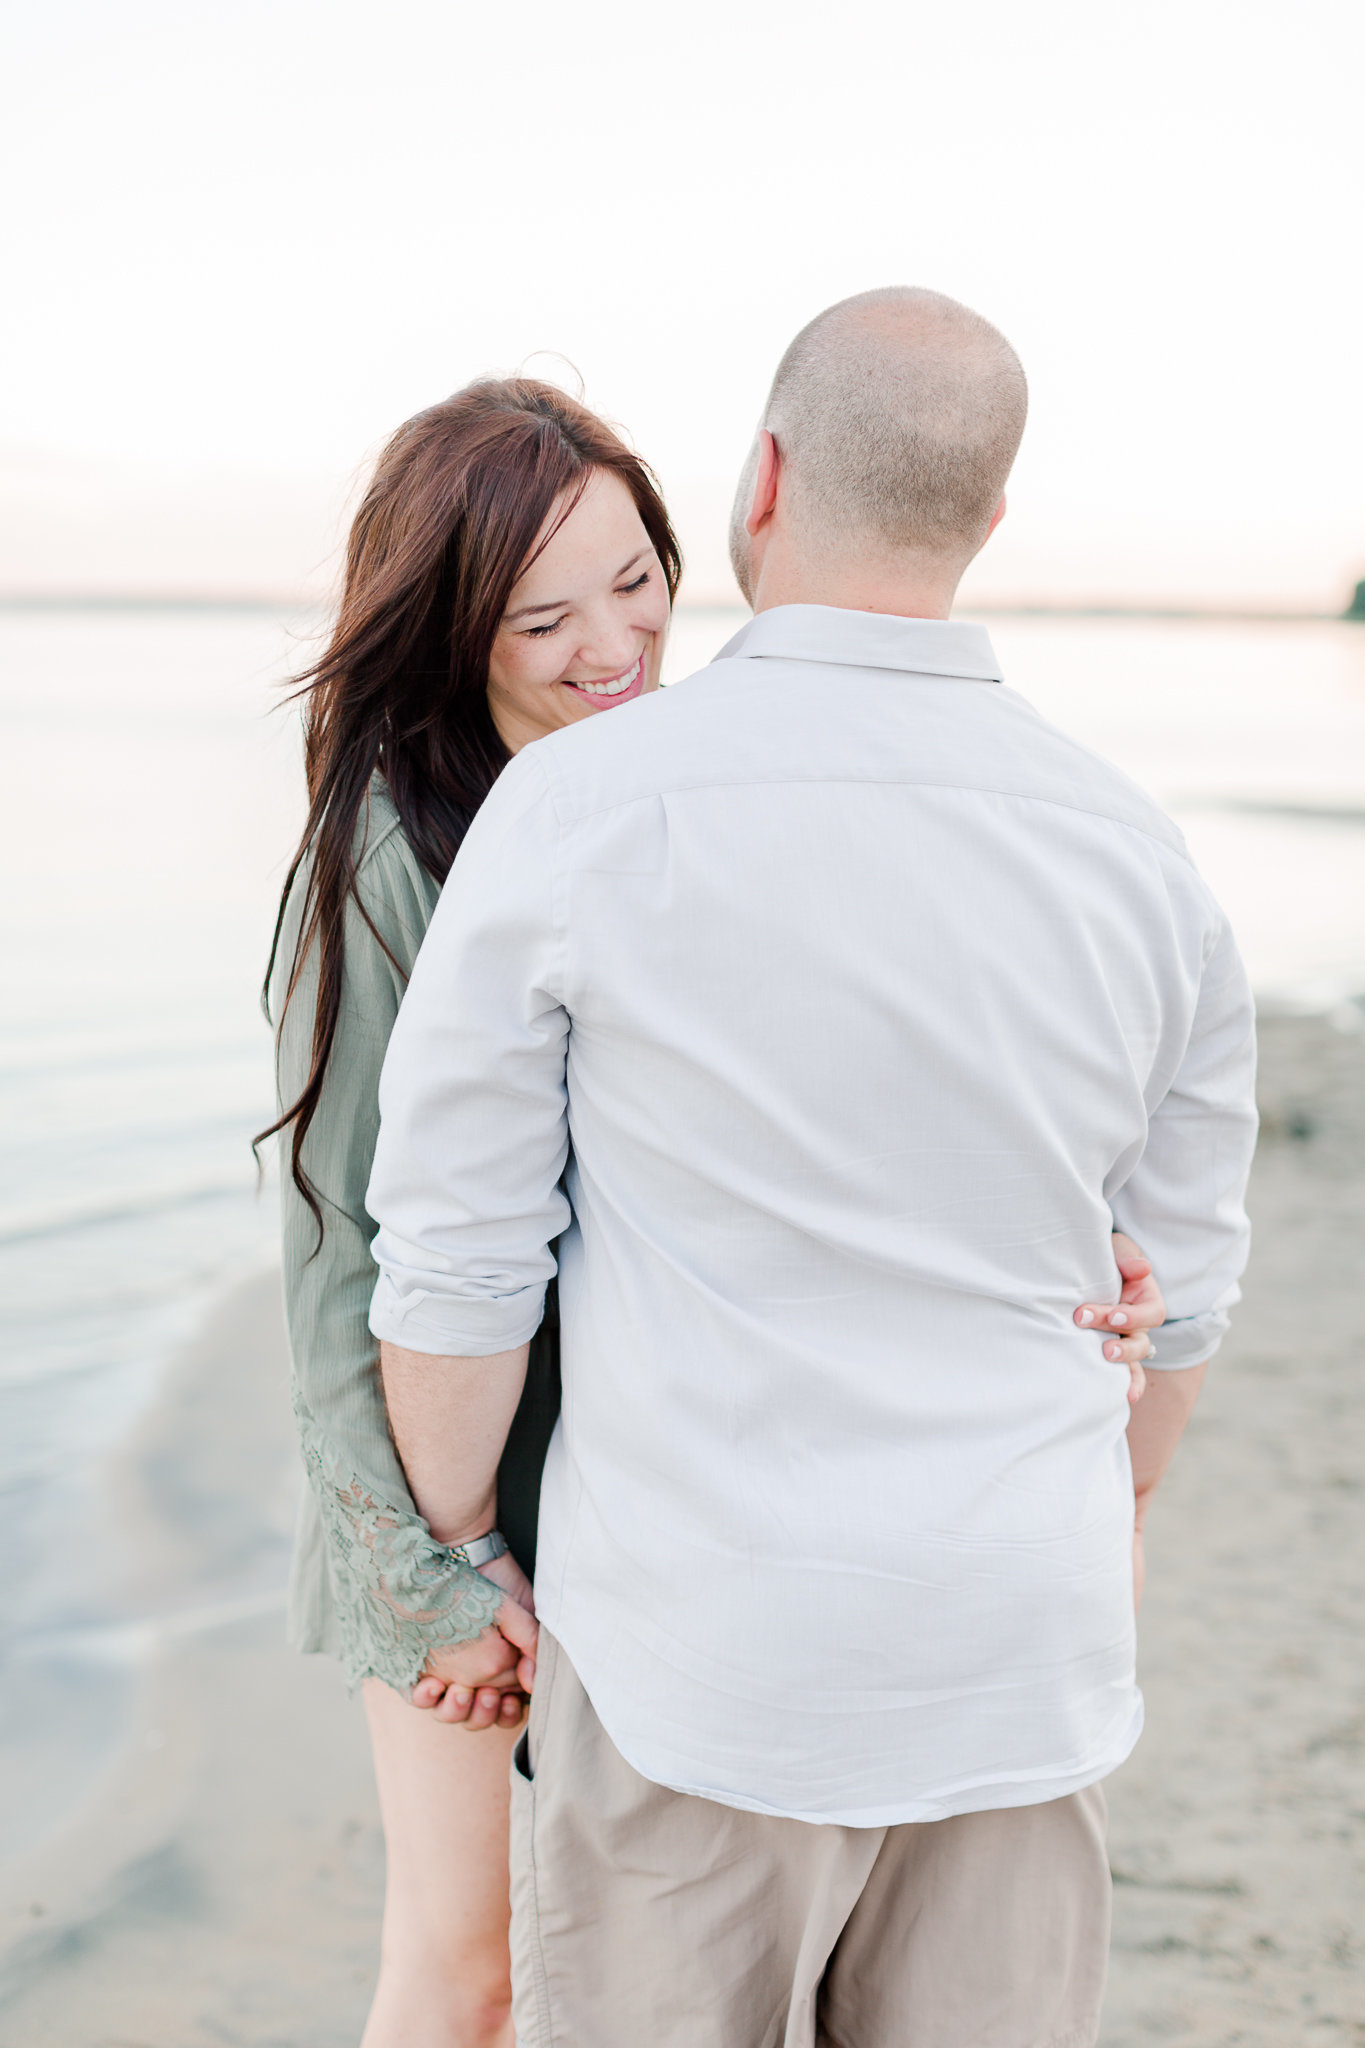 photographe-fiancailles-montreal-parc-national-oka-lisa-renault-photographie-beach-engagement-session-75